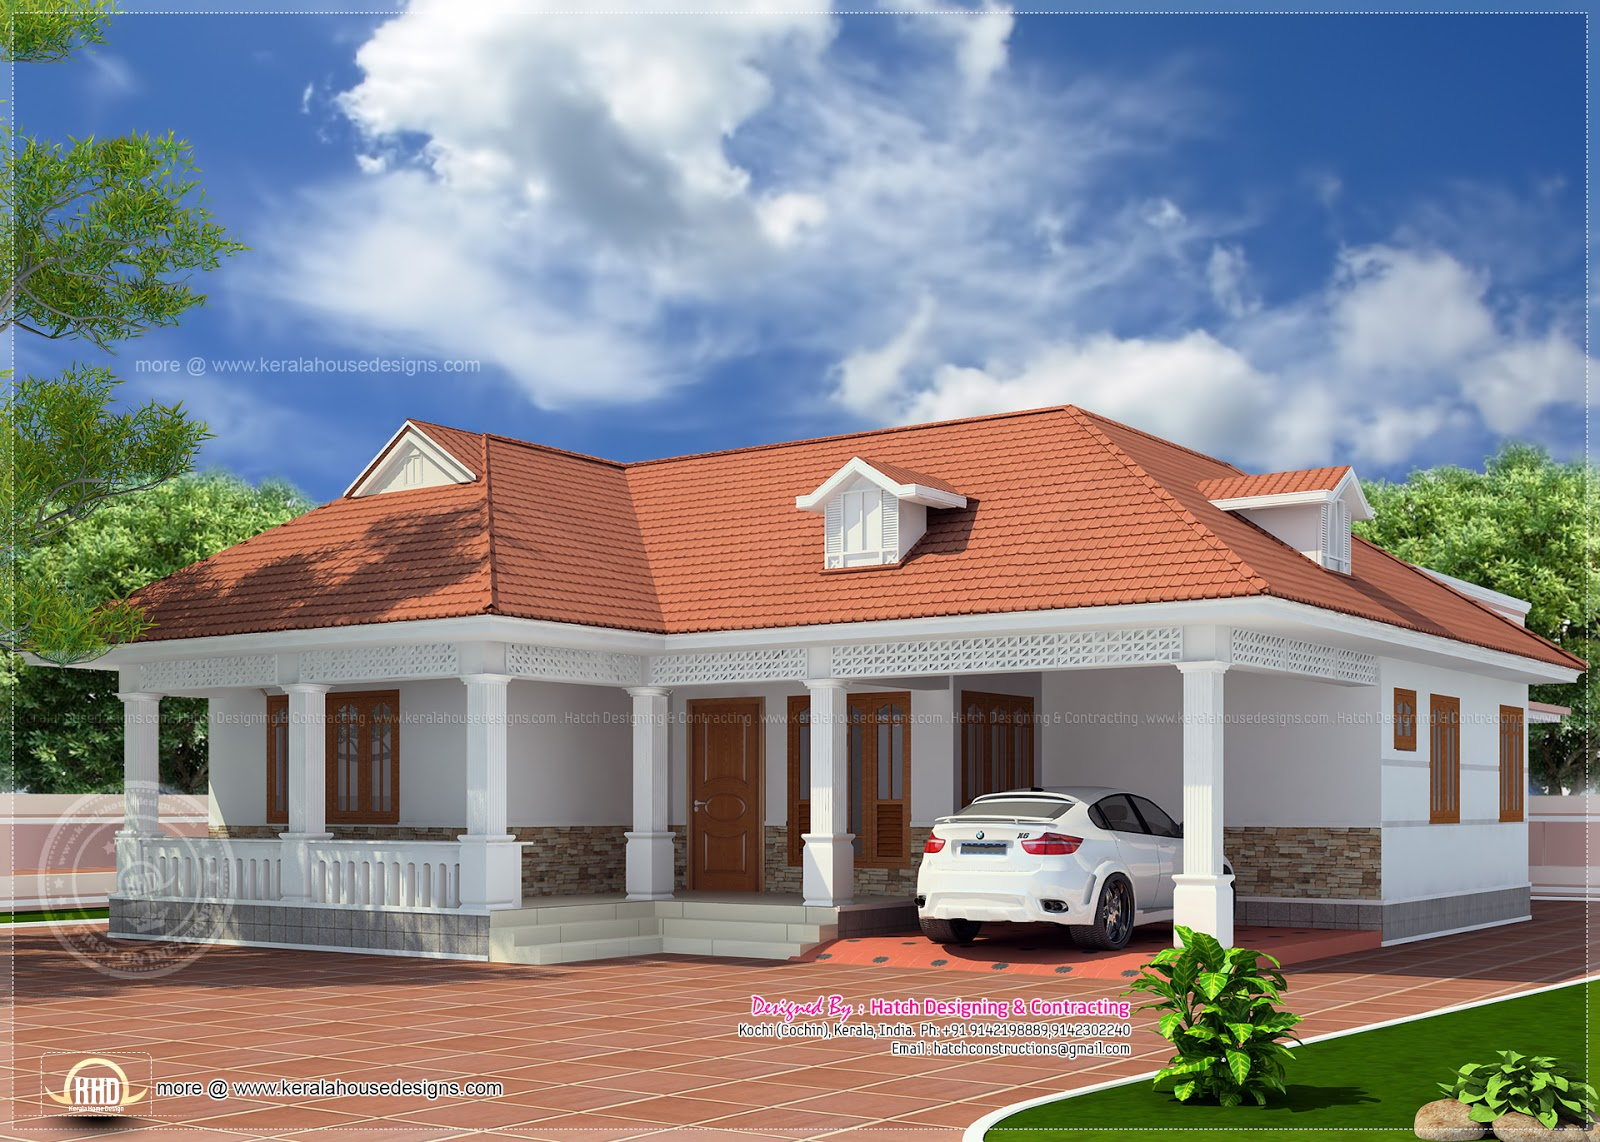 1850 kerala style home elevation kerala home for Www kerala house designs com